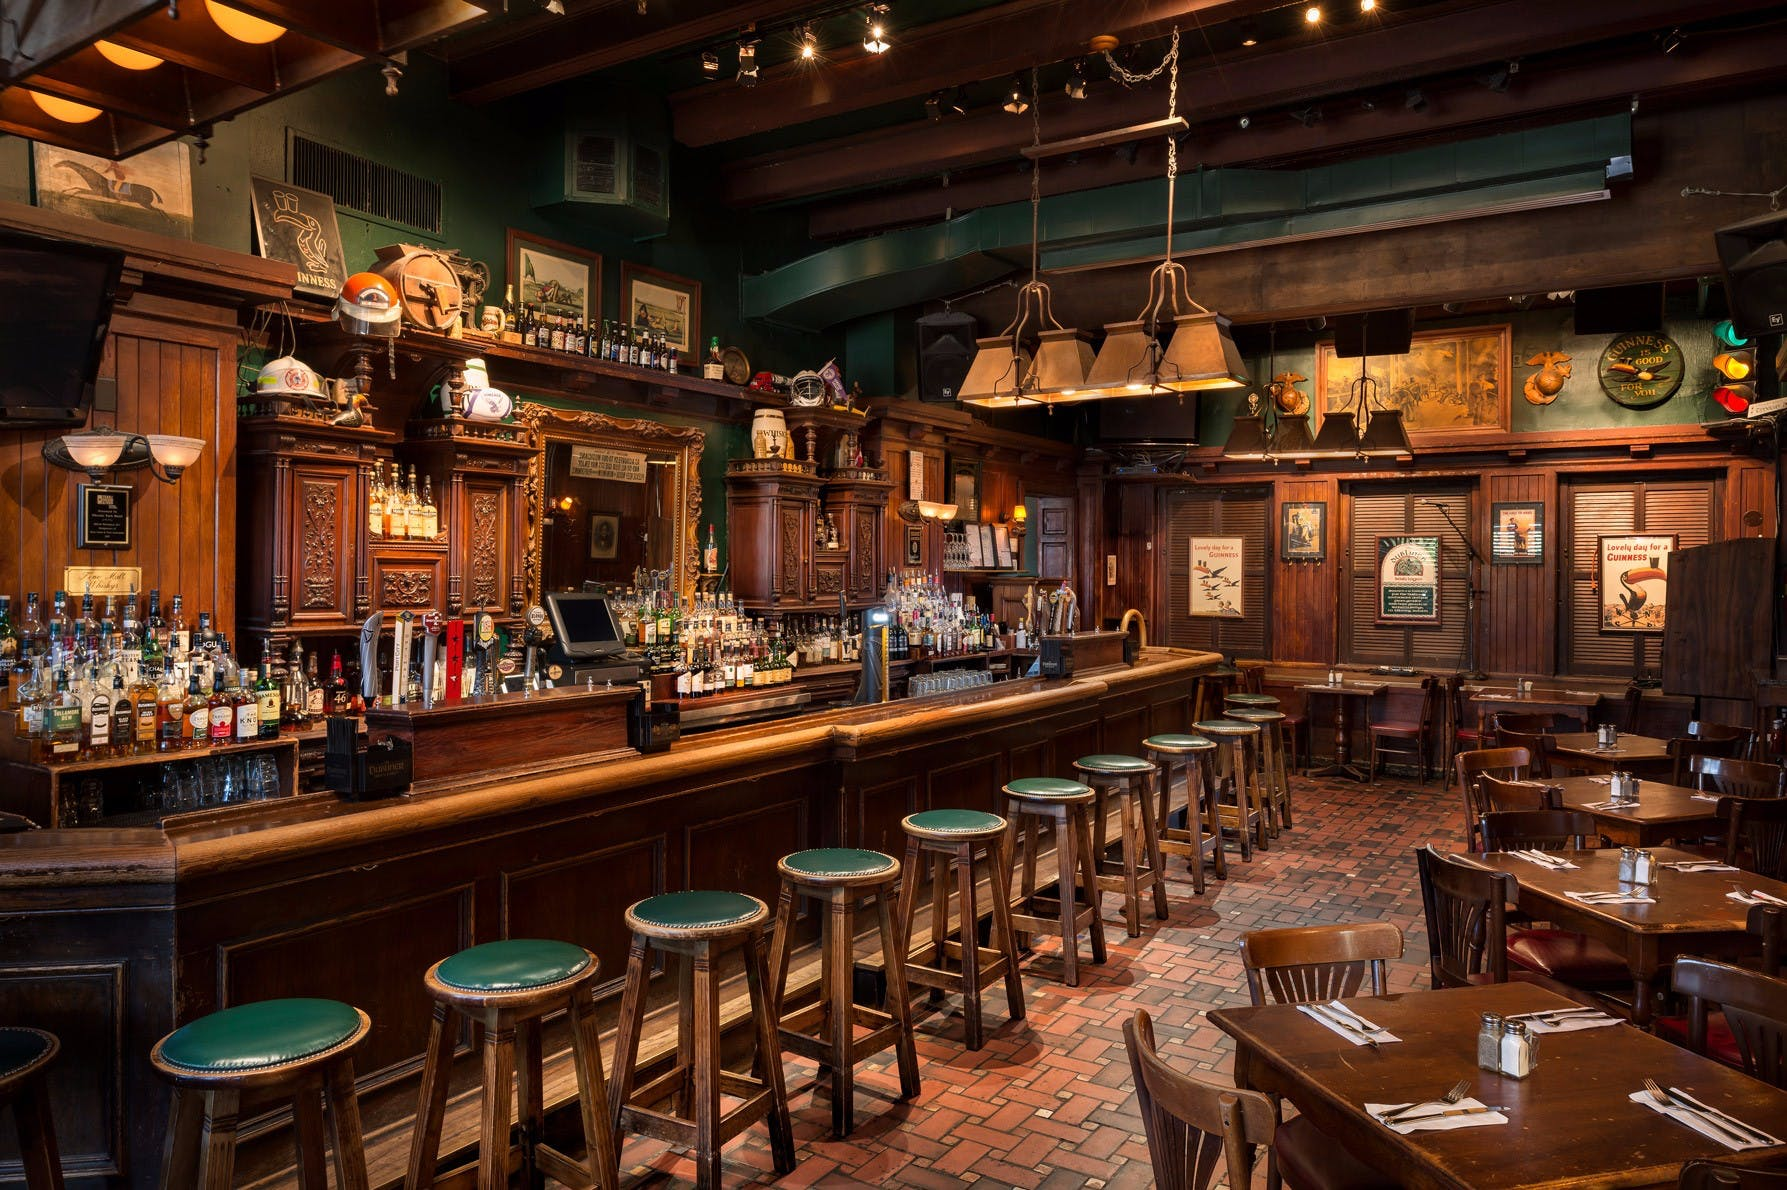 Photo #3 Main Bar Room at The Dubliner